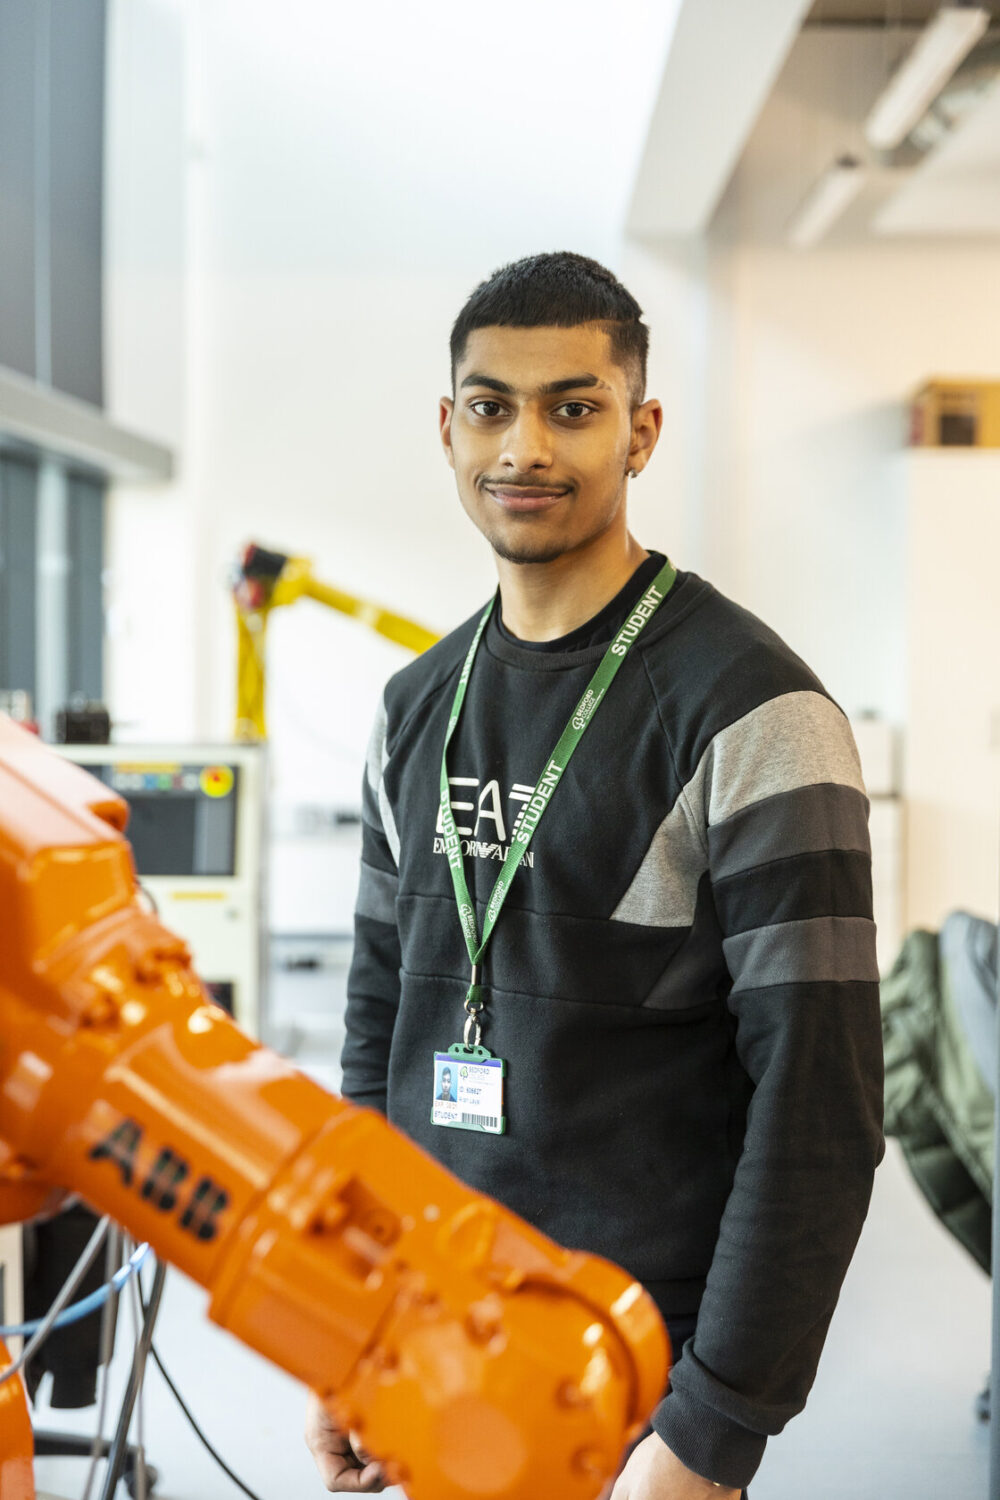 Engineering student with robotic arm Bedford College